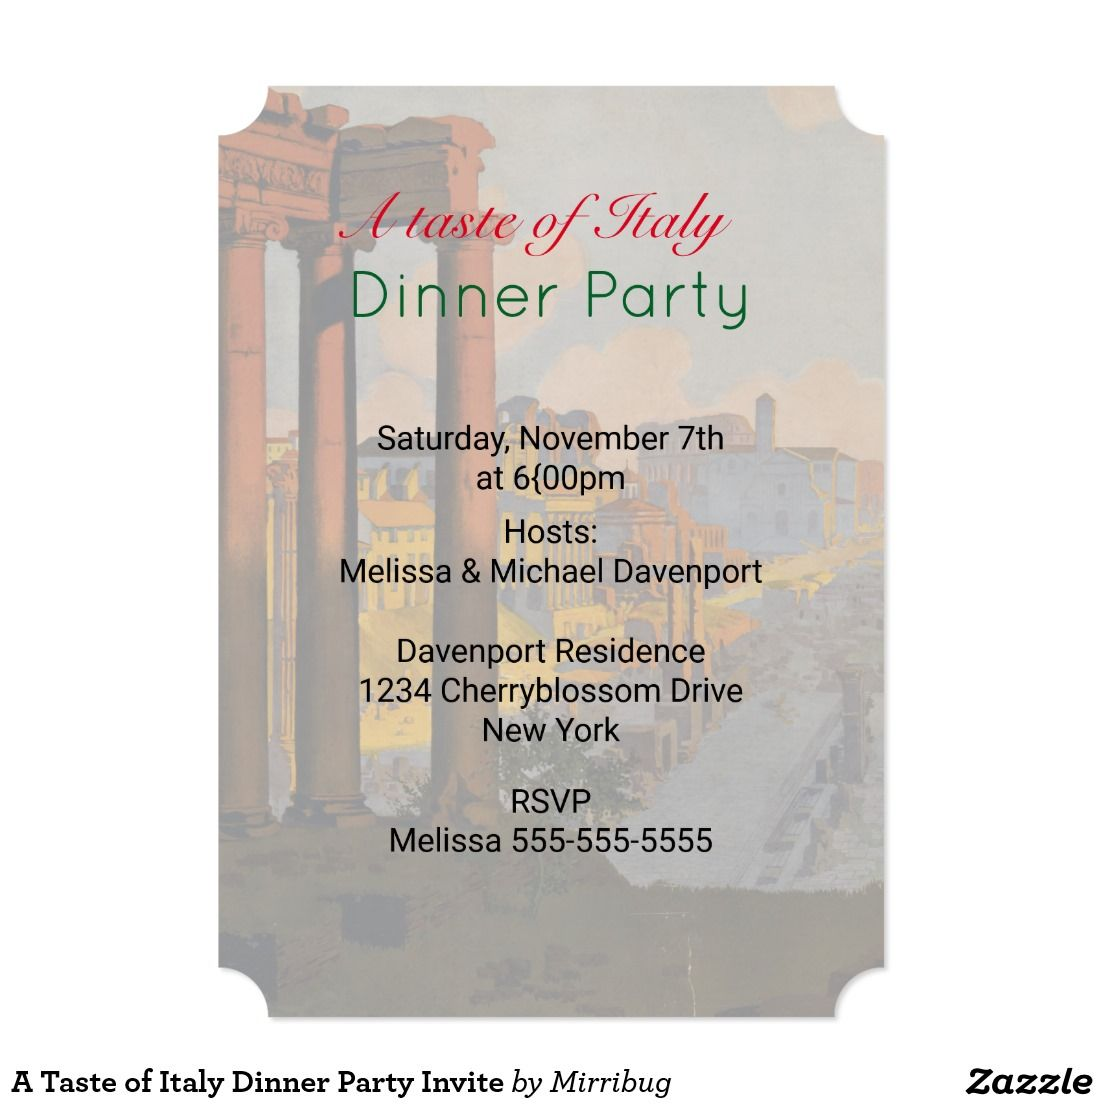 A taste of italy dinner party invite zazzle invitations a taste of italy dinner party invite monicamarmolfo Choice Image